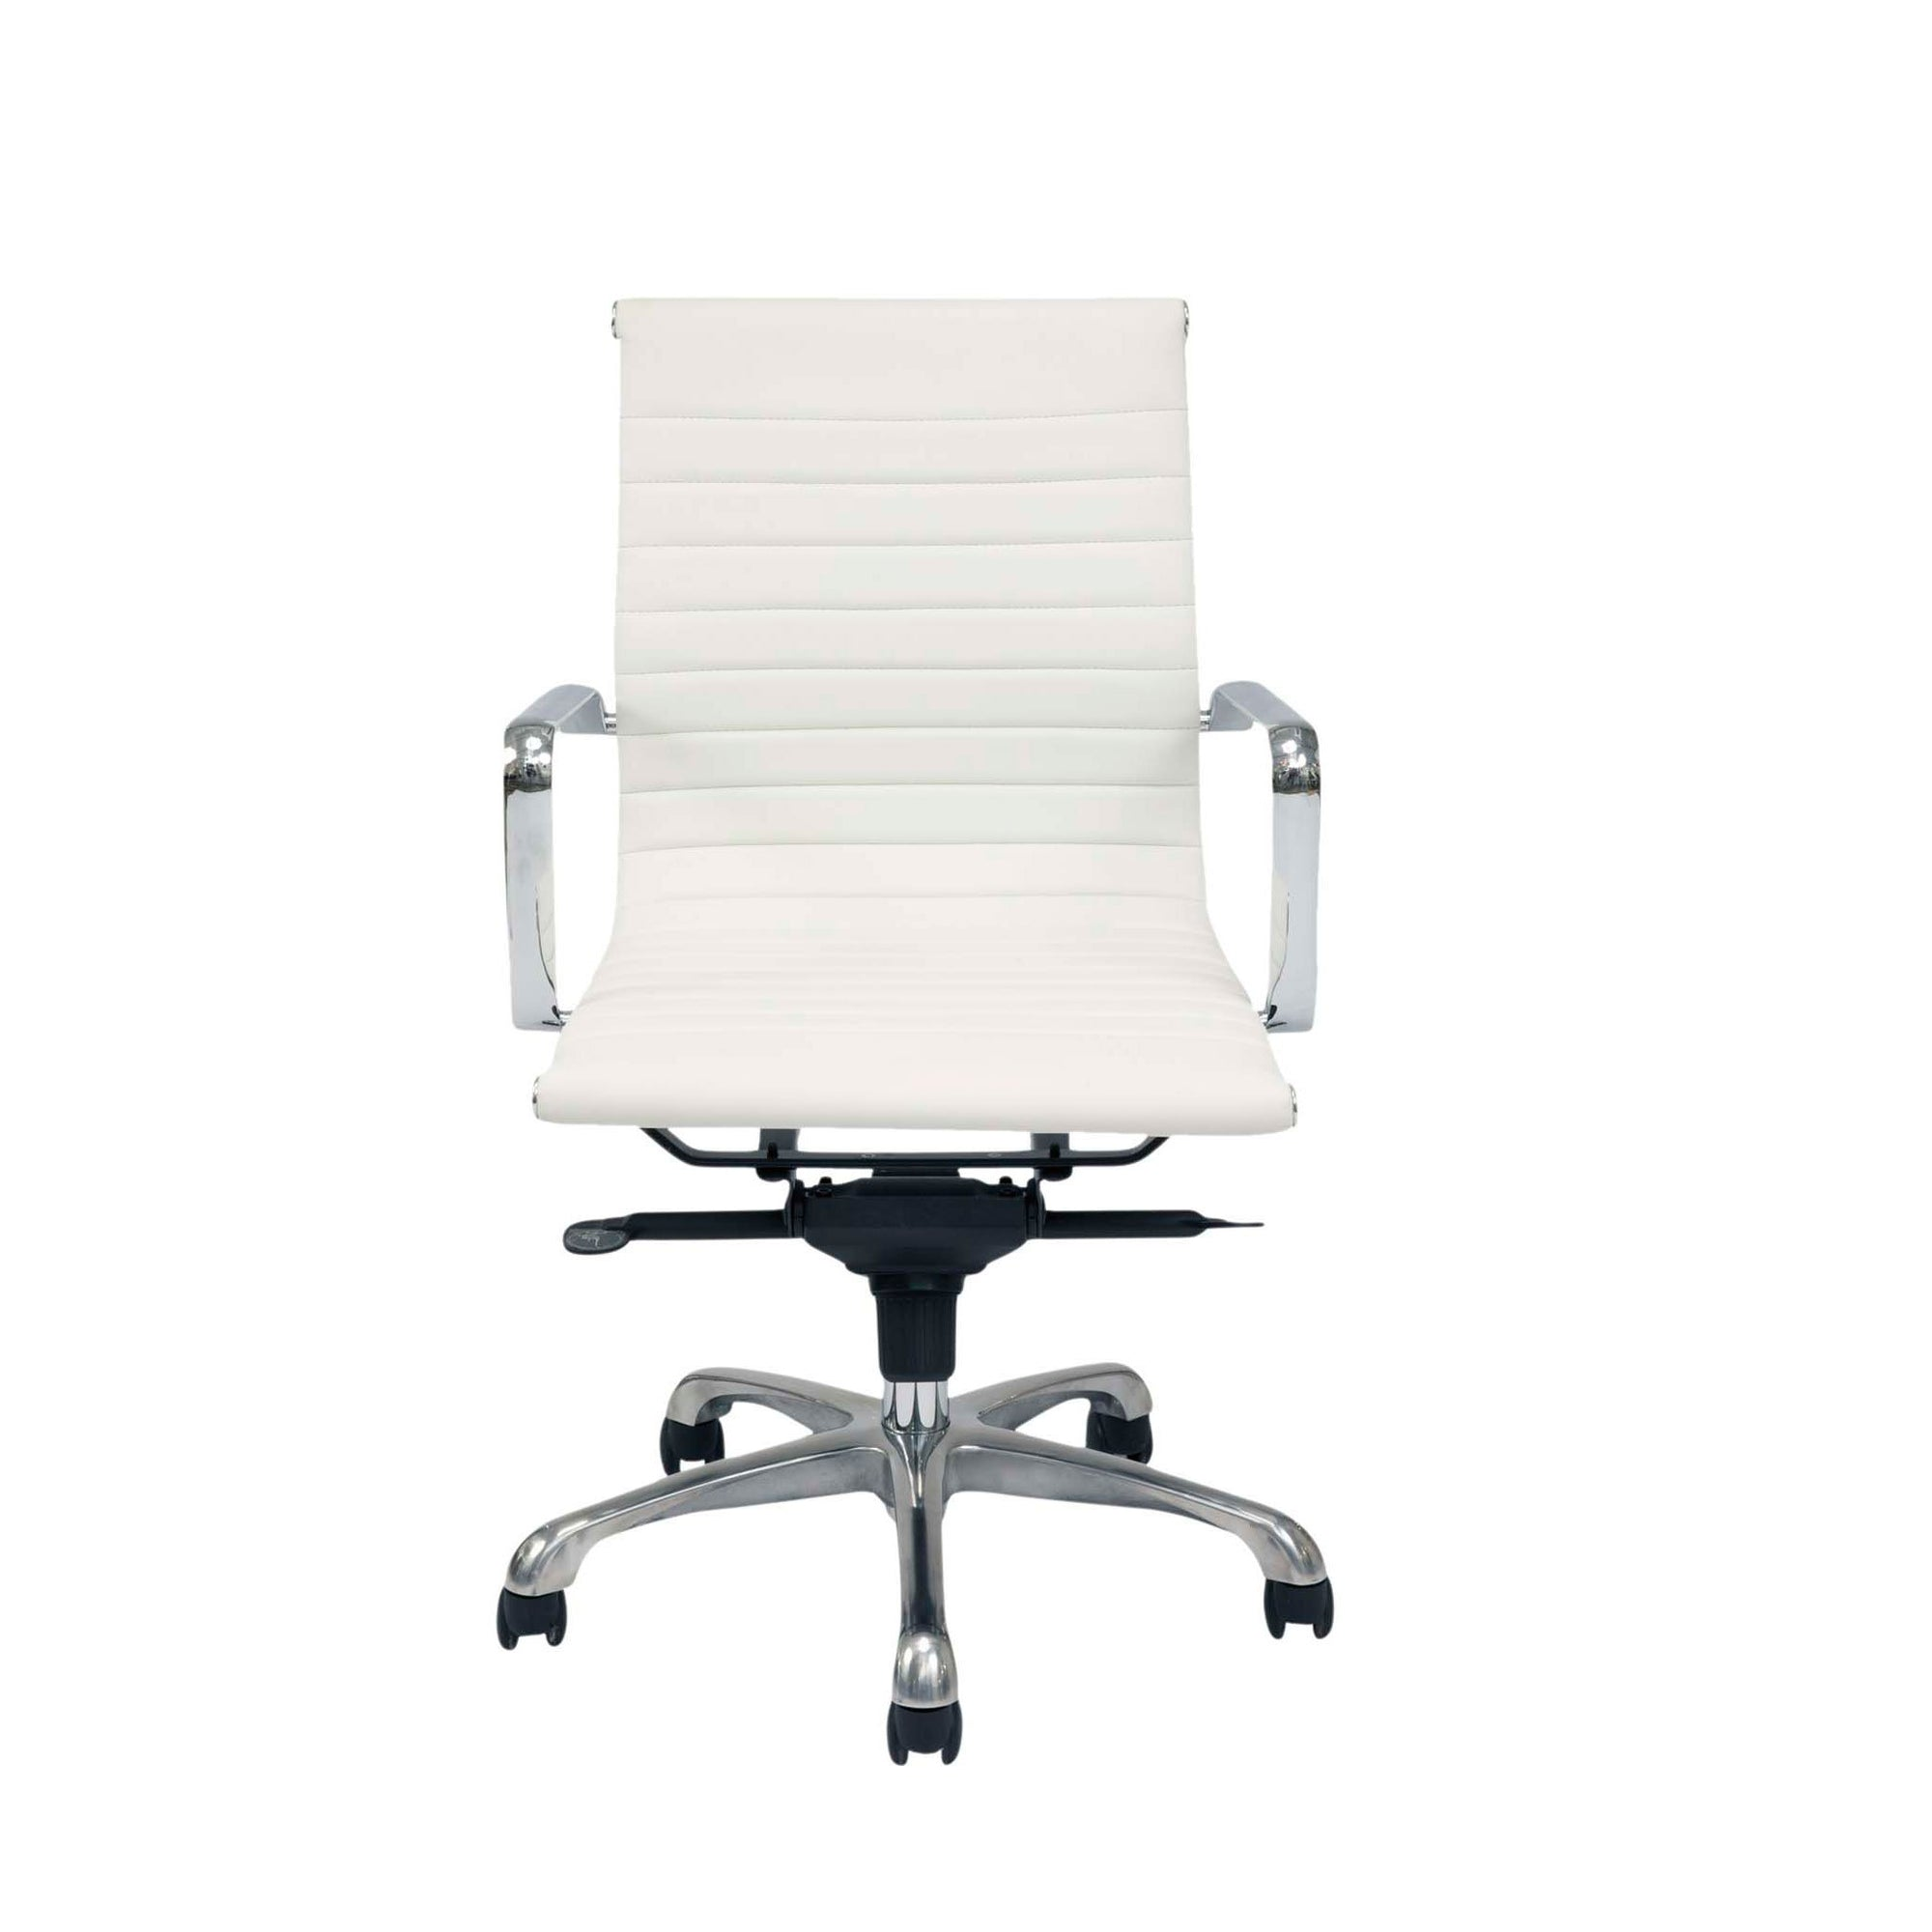 MOES-OMEGA OFFICE CHAIR LOW BACK-Office Chairs-MODTEMPO